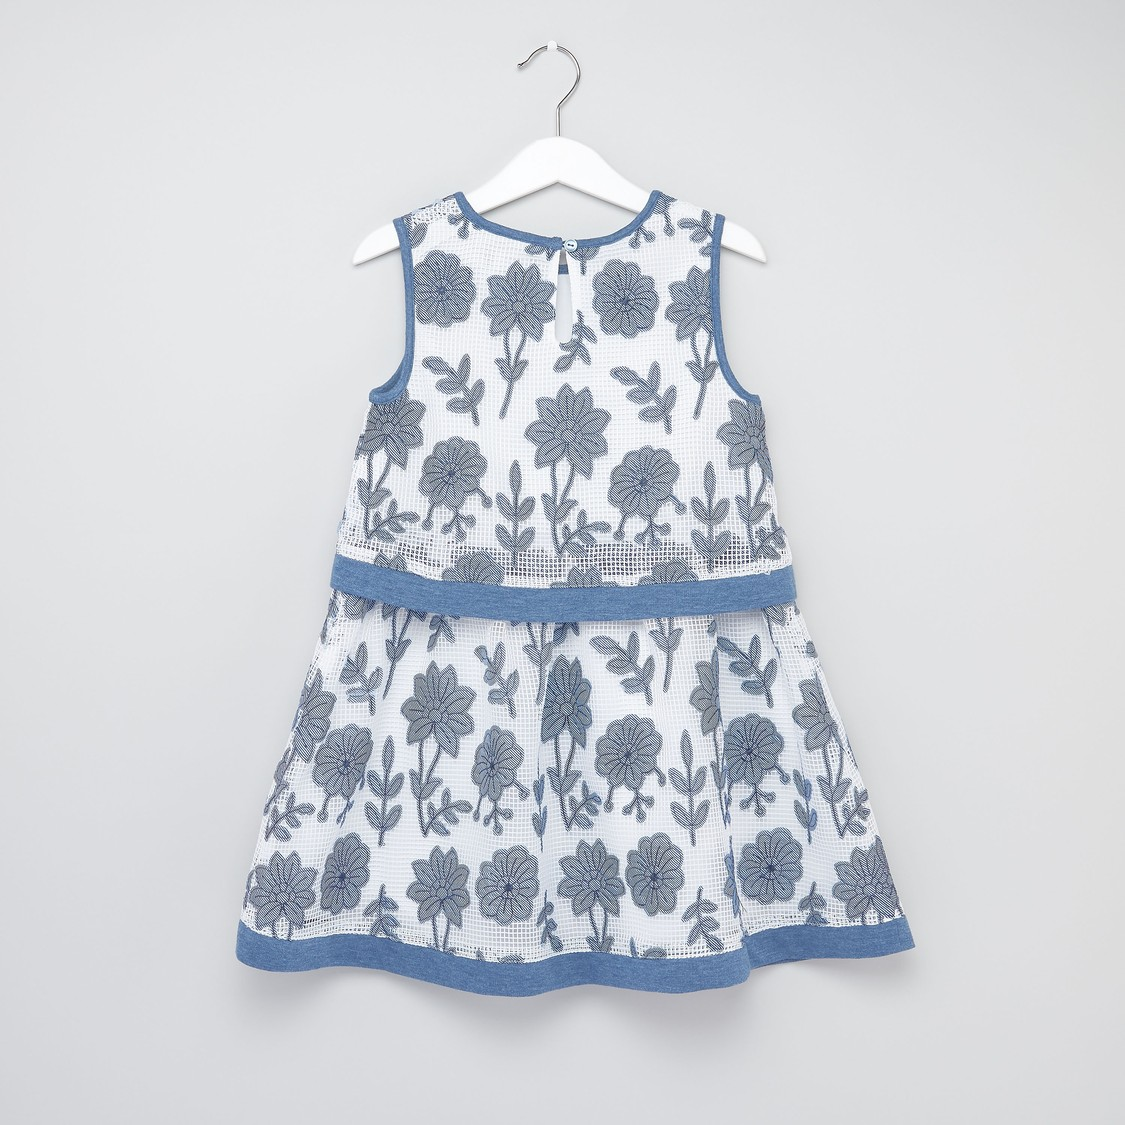 Round Neck Sleeveless A-line Dress with Floral Applique